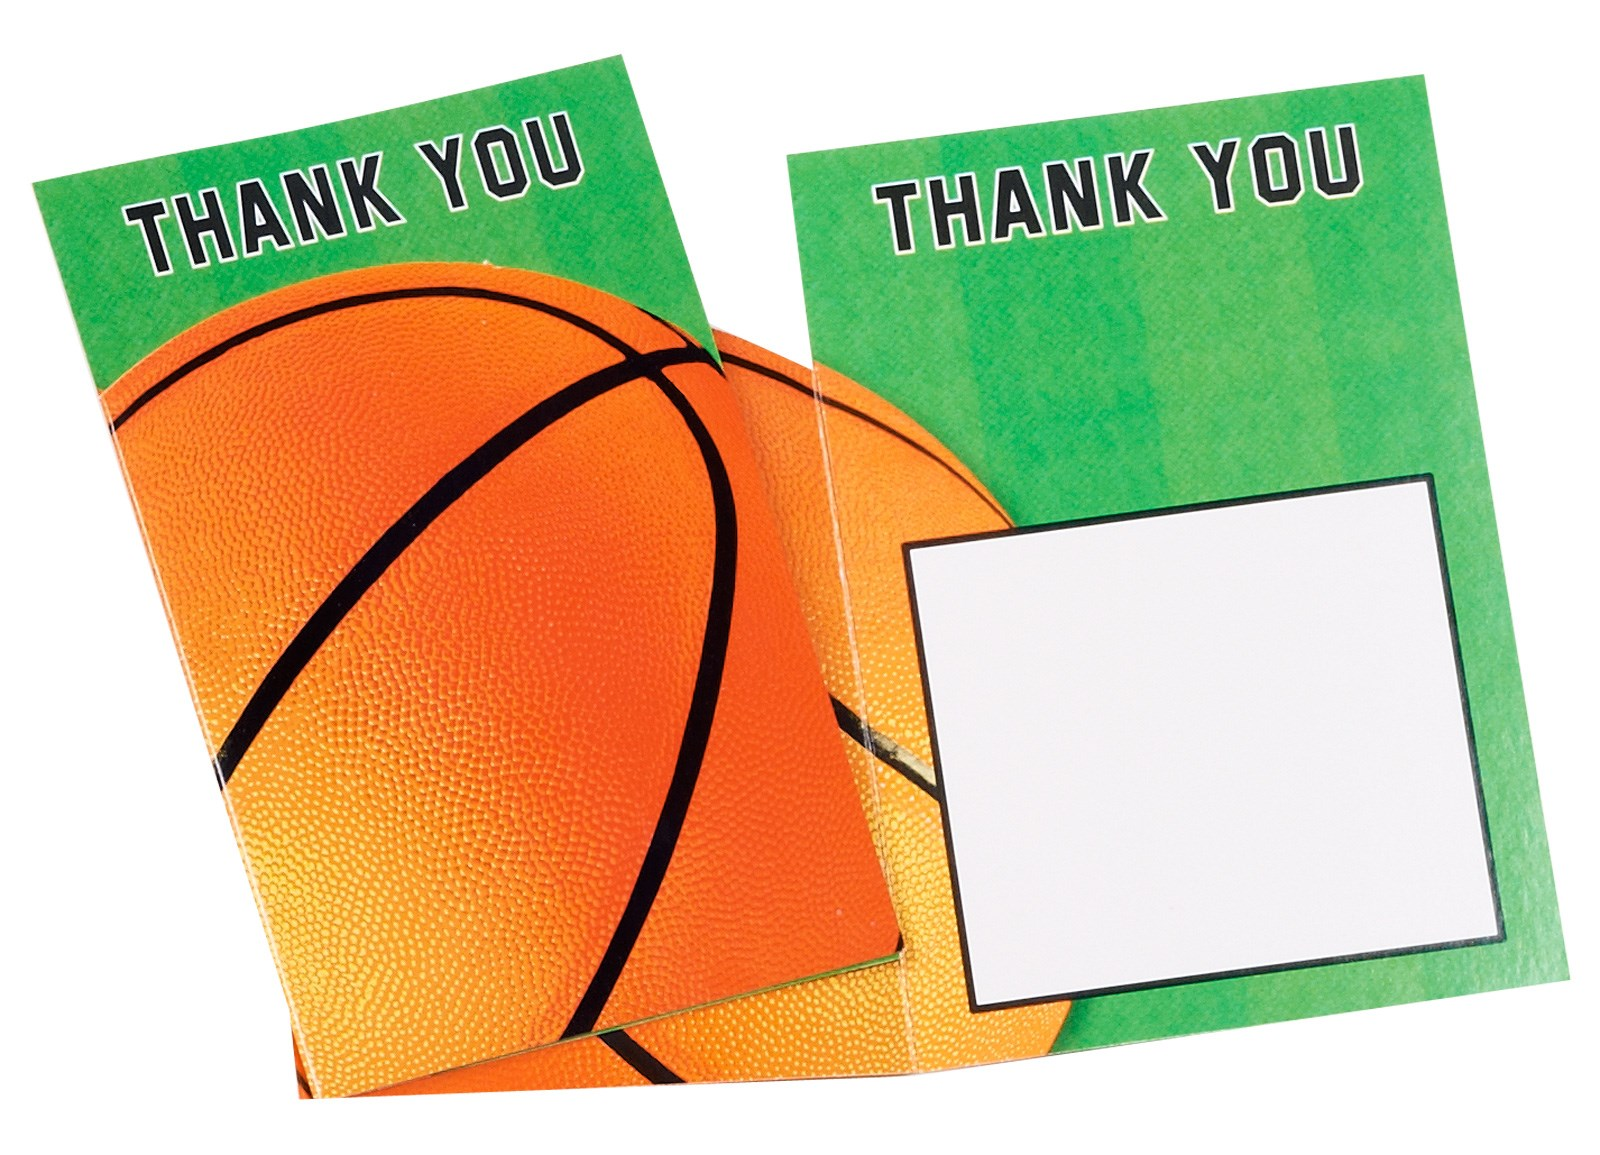 Basketball Fan – Thank You Cards 8 count